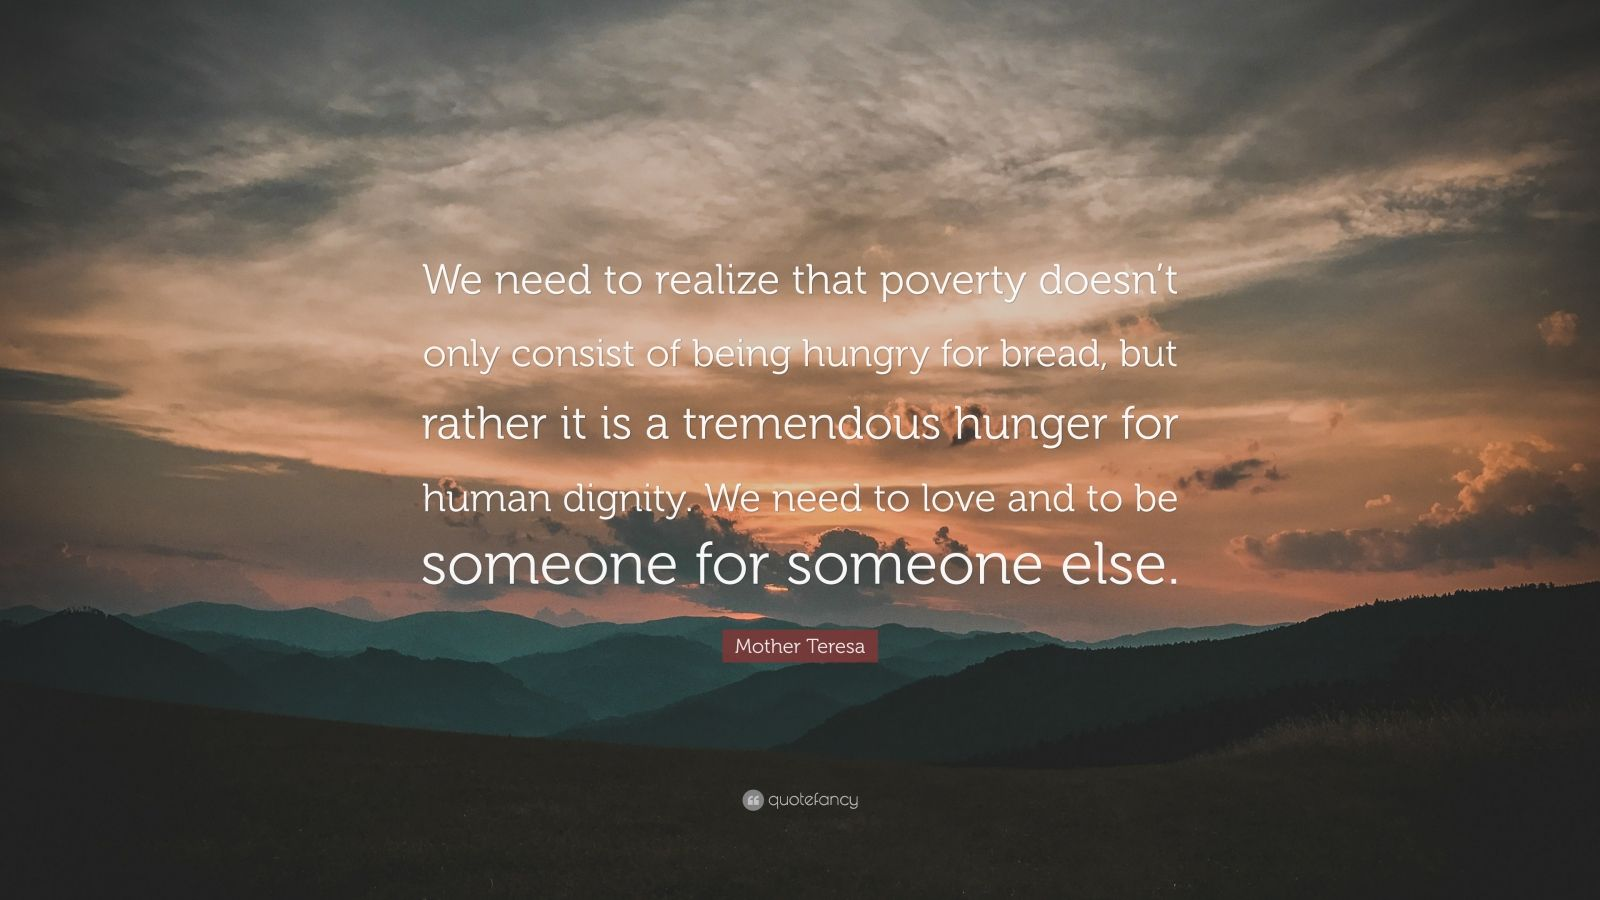 """Mother Teresa Quote: """"We need to realize that poverty doesn't only consist of being hungry for bread, but rather it is a tremendous hunger for human dignity. We need to love and to be someone for someone else."""""""